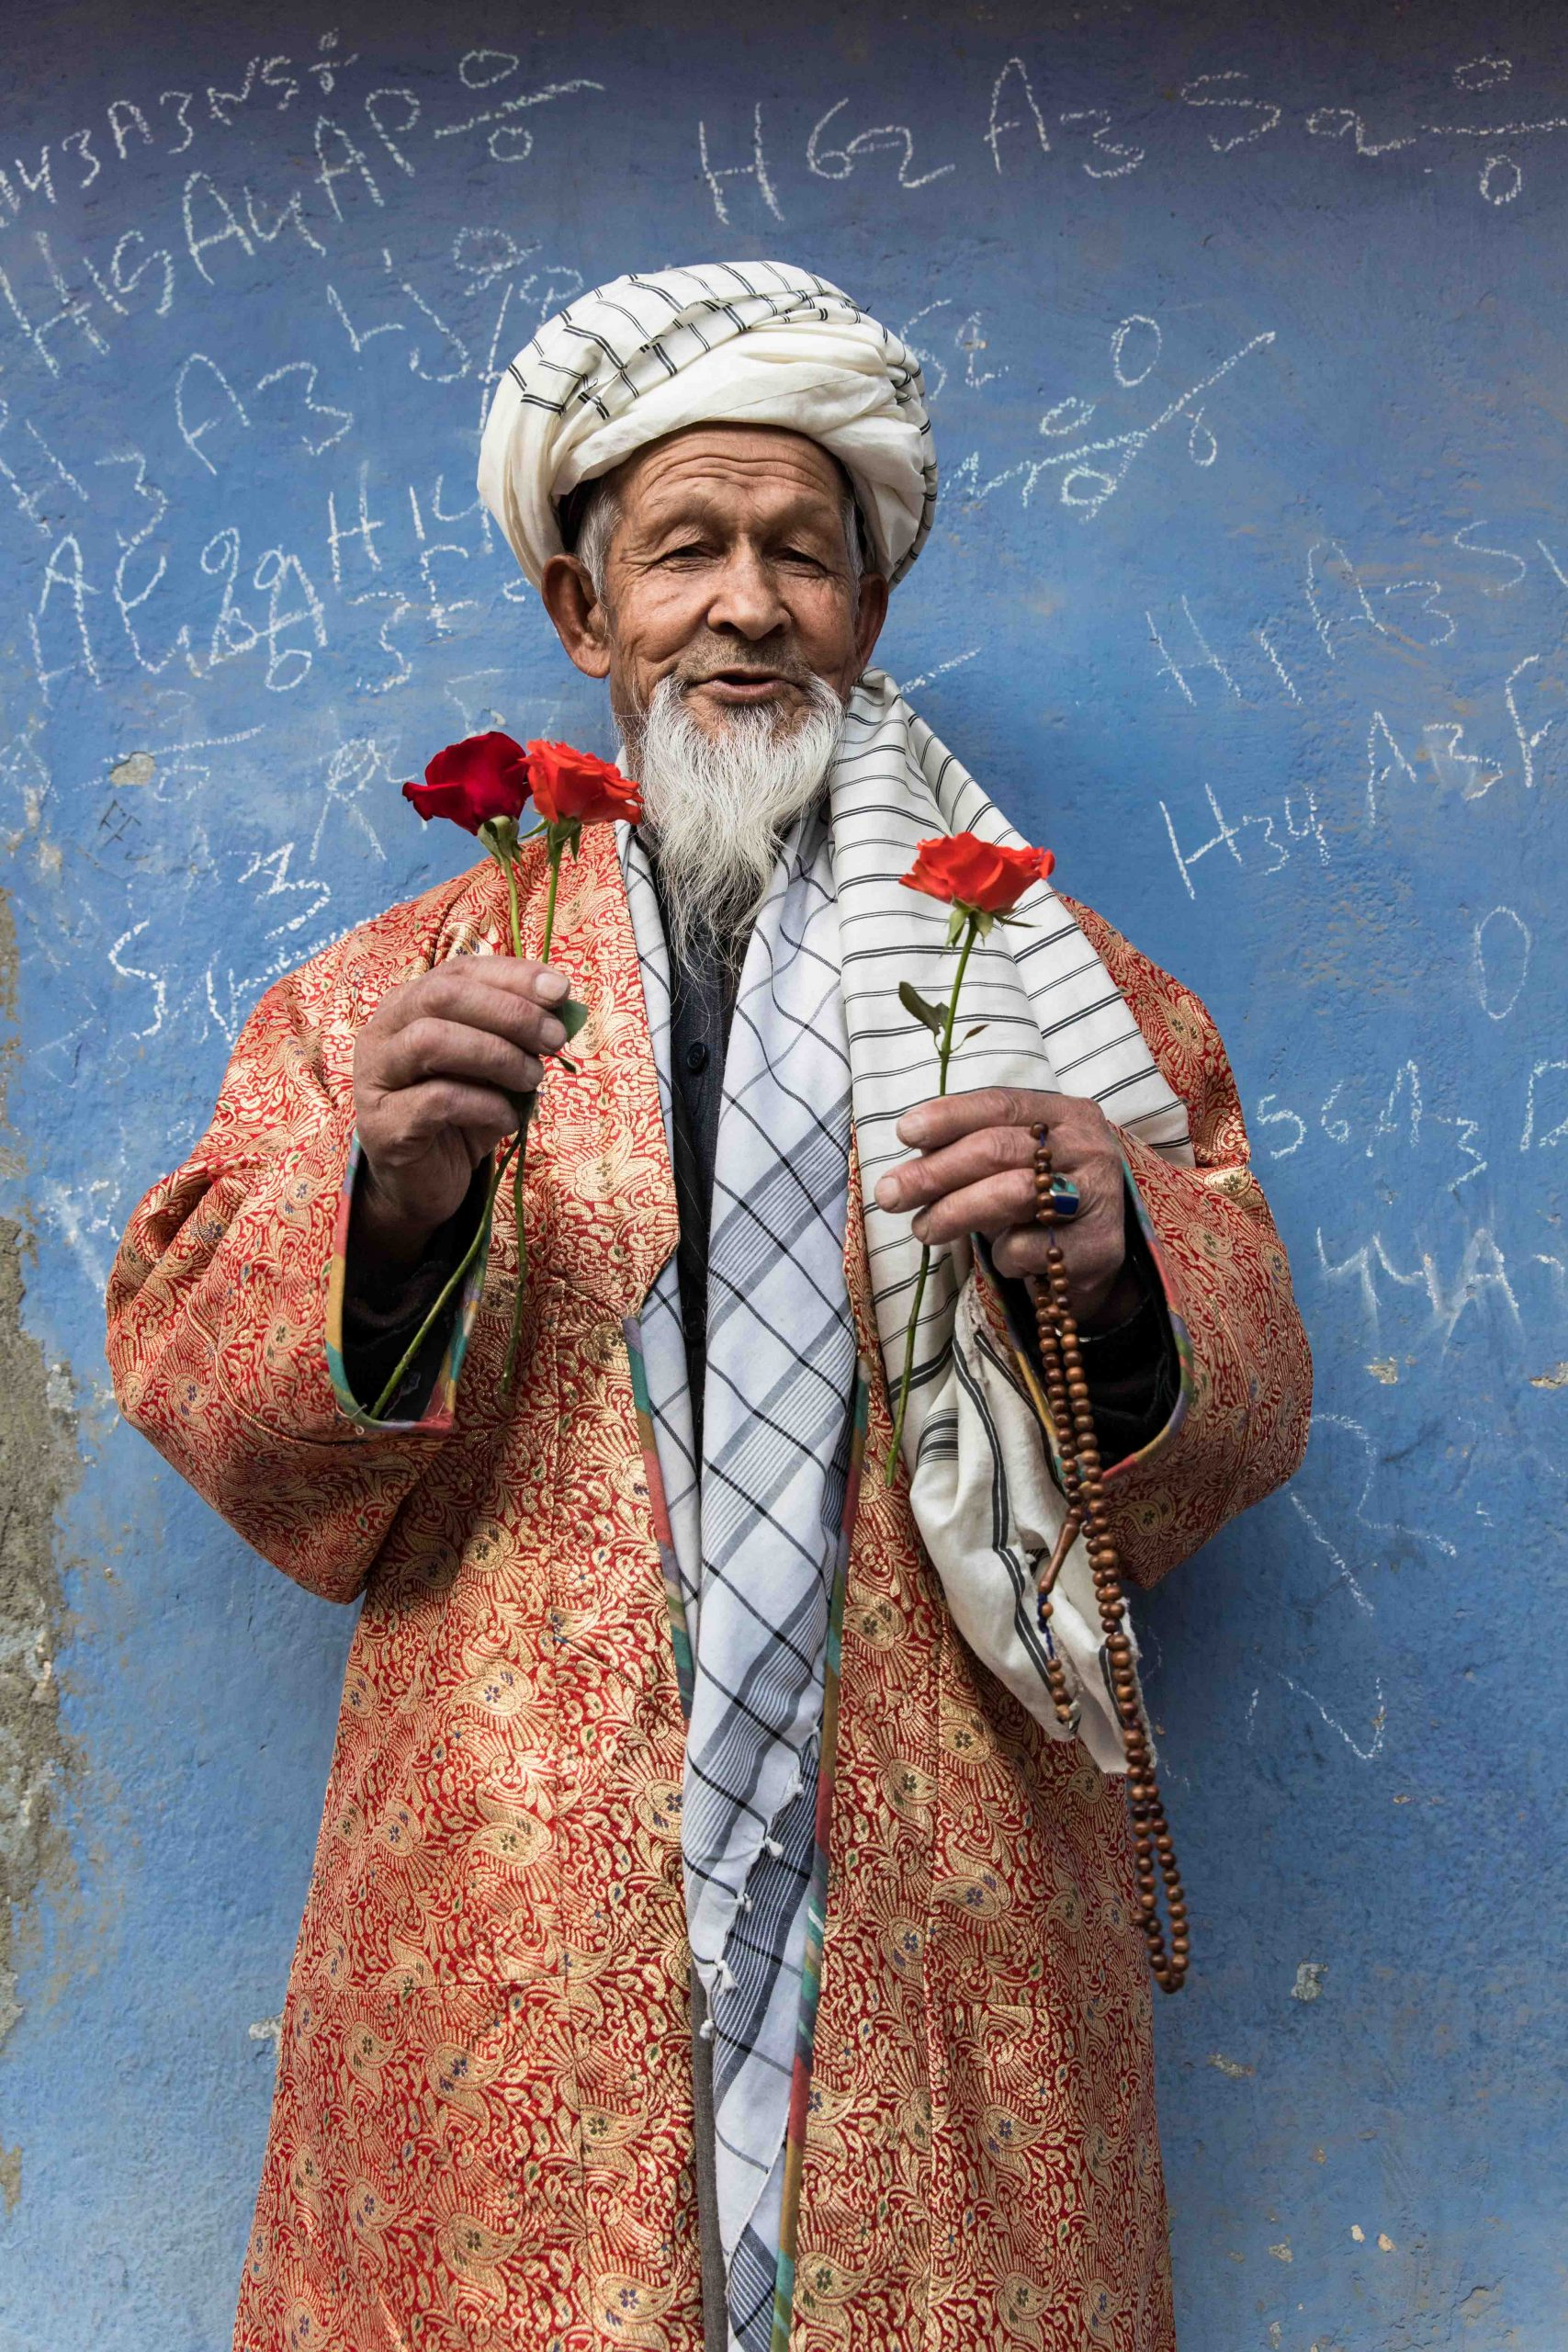 color photo portrait by Oriane Zérah afghan man with flowers